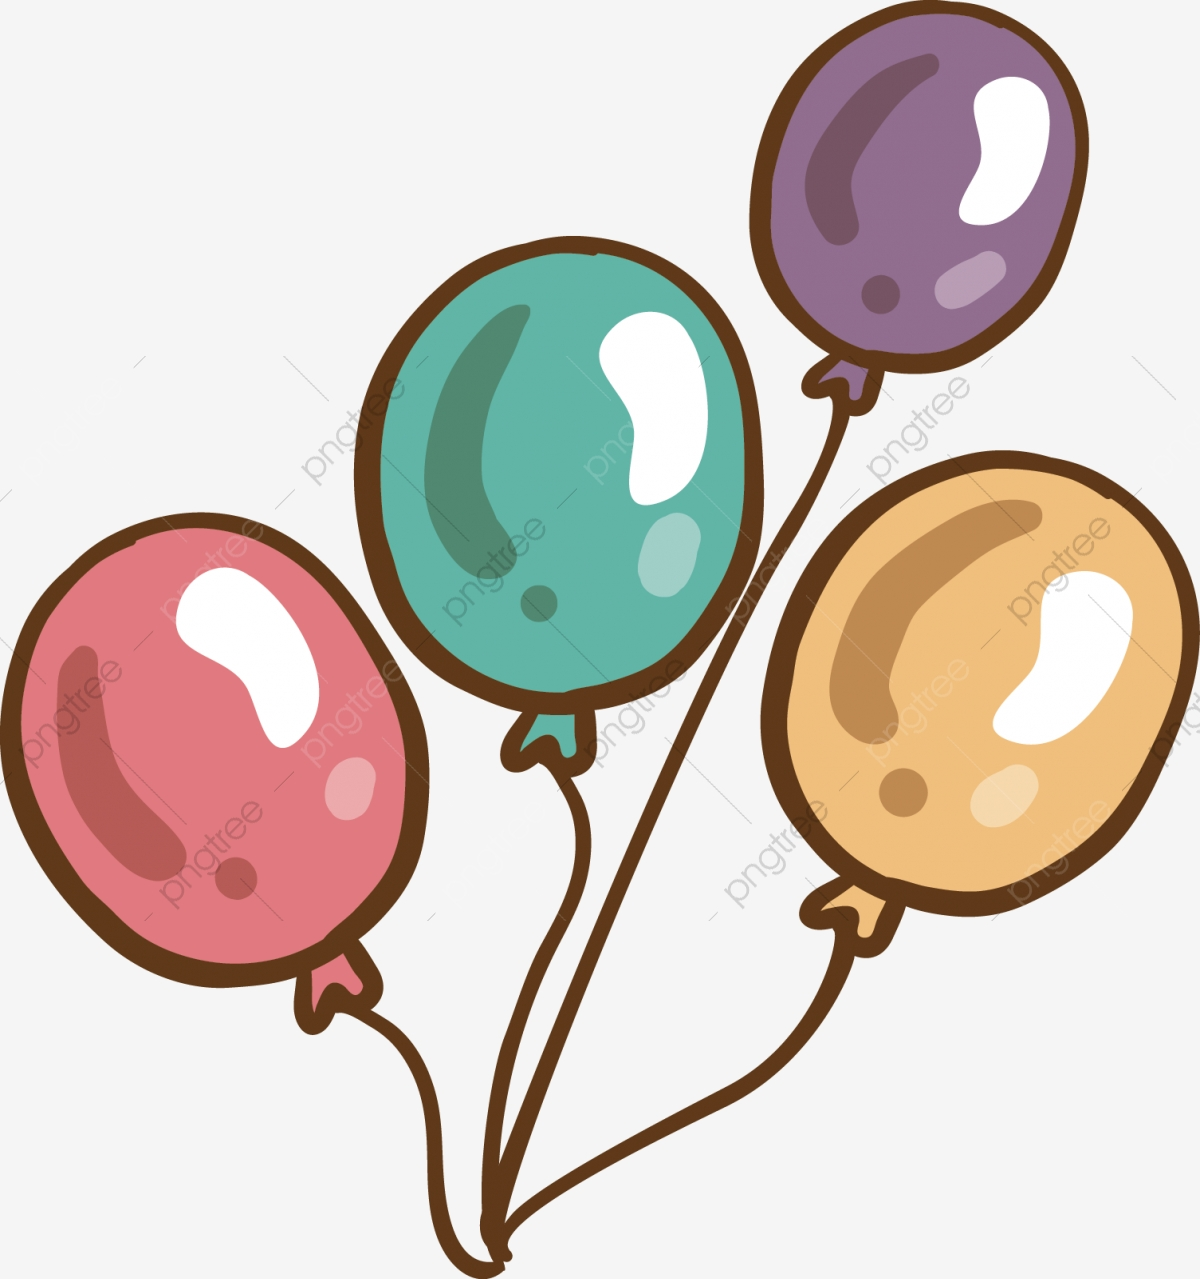 Cartoon Balloons Png Images Vector And Psd Files Free Download On Pngtree About 53% of these are balloons. https pngtree com freepng colorful balloons cartoon balloon cute balloon yellow balloon 3799891 html